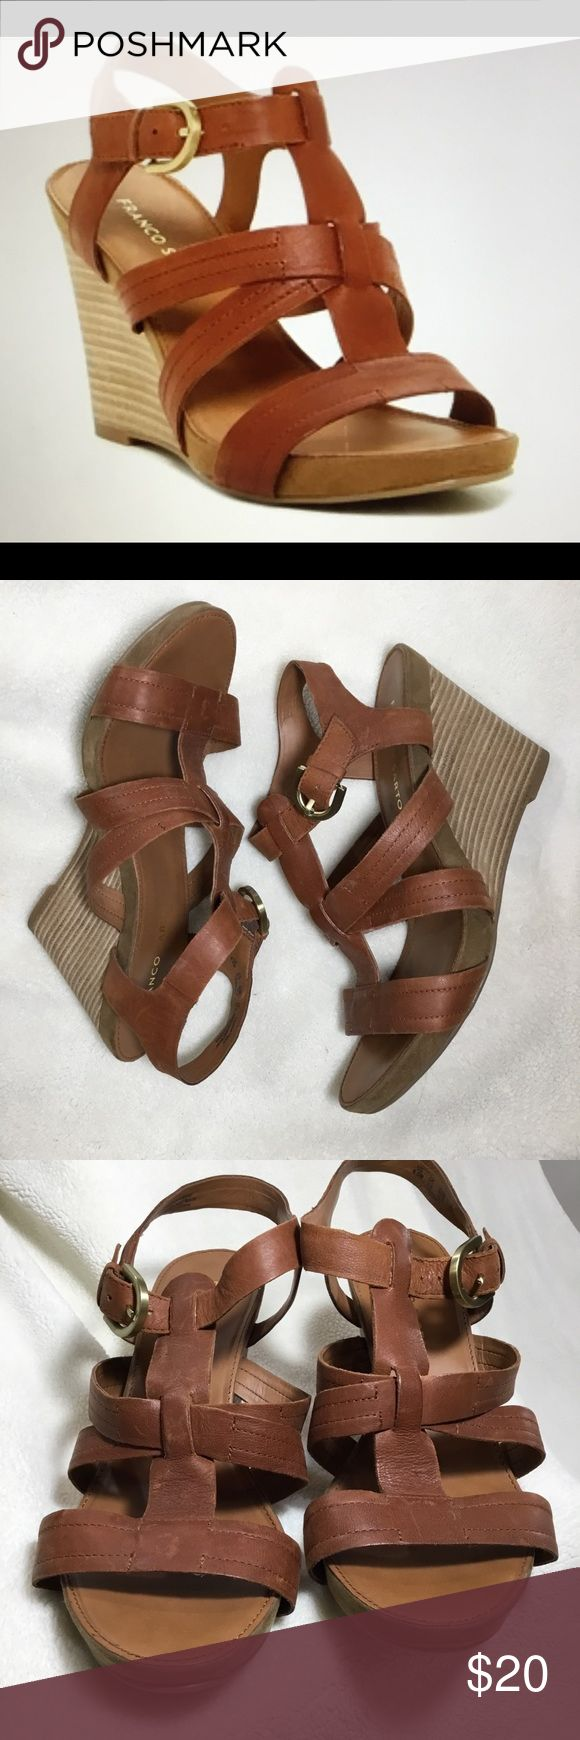 Franco Sarto Harriet Brown Leather Wedge Size 8.5 Franco Sarto Harriet Brown Leather Wedge Size 8.5.  Soft leather straps Comfortable wedge  Good used condition there are some signs of wear (please be sure to zoom in on the pics to see).  Offers are always welcome! Franco Sarto Shoes Wedges